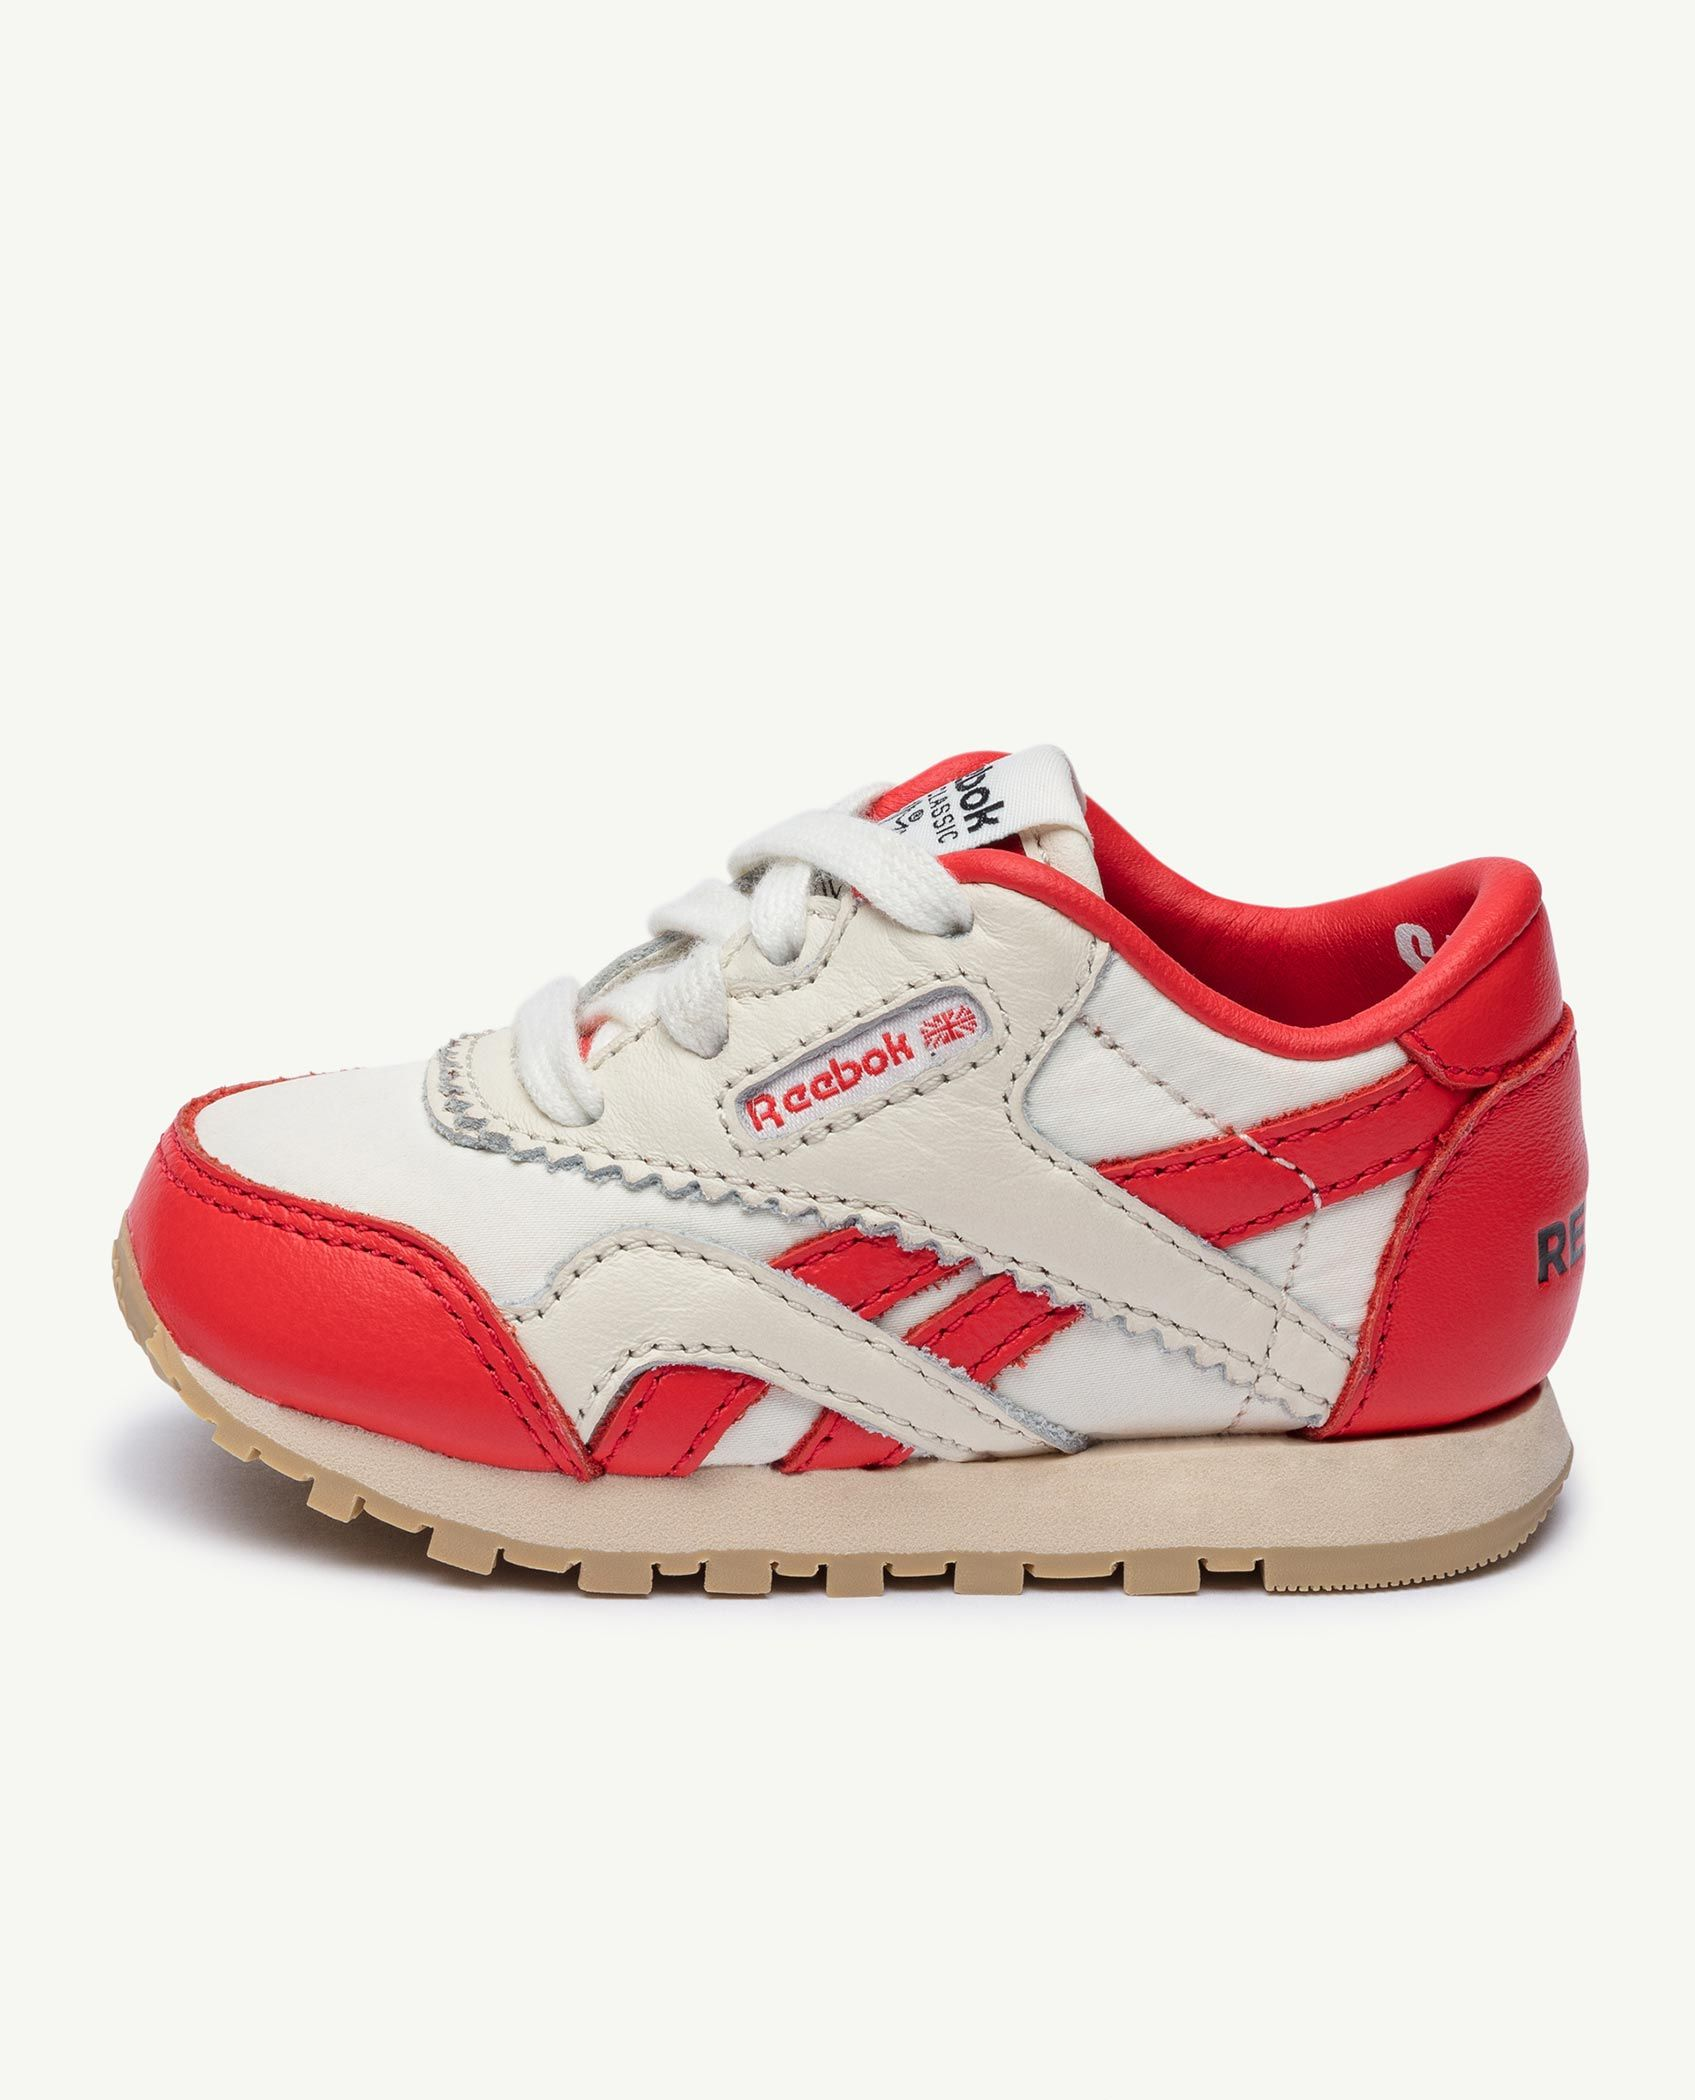 Reebok x The Animals Observatory Classic Nylon Red Baby img-1